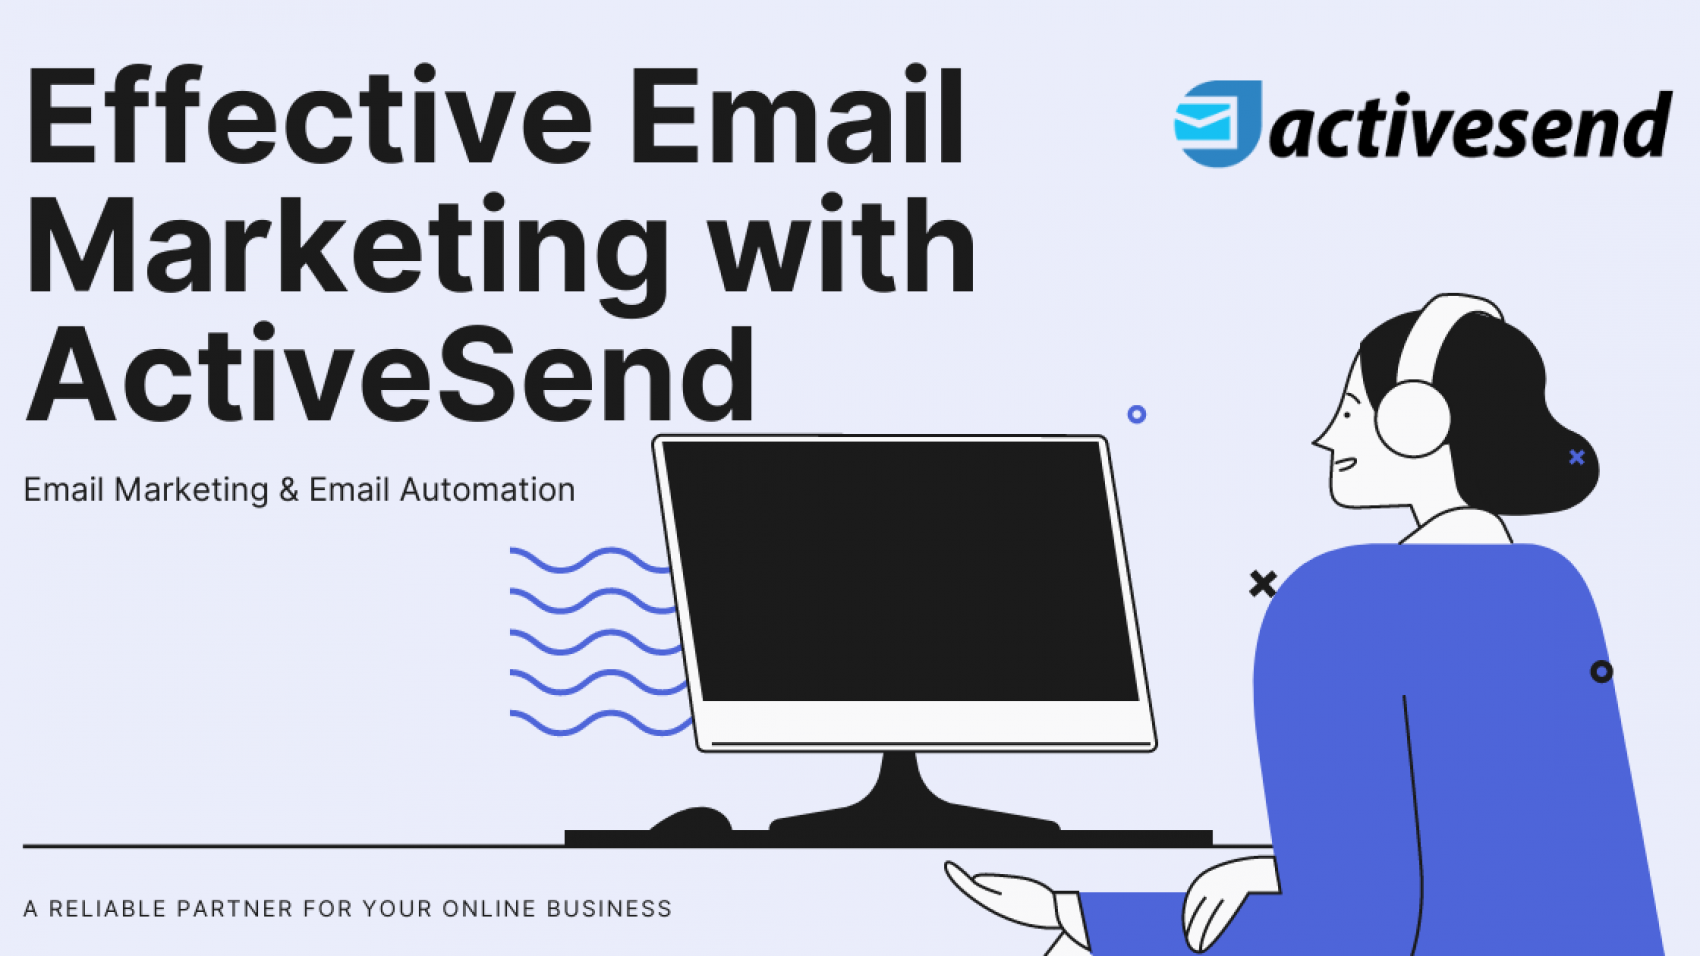 Effective Email Marketing with ActiveSend